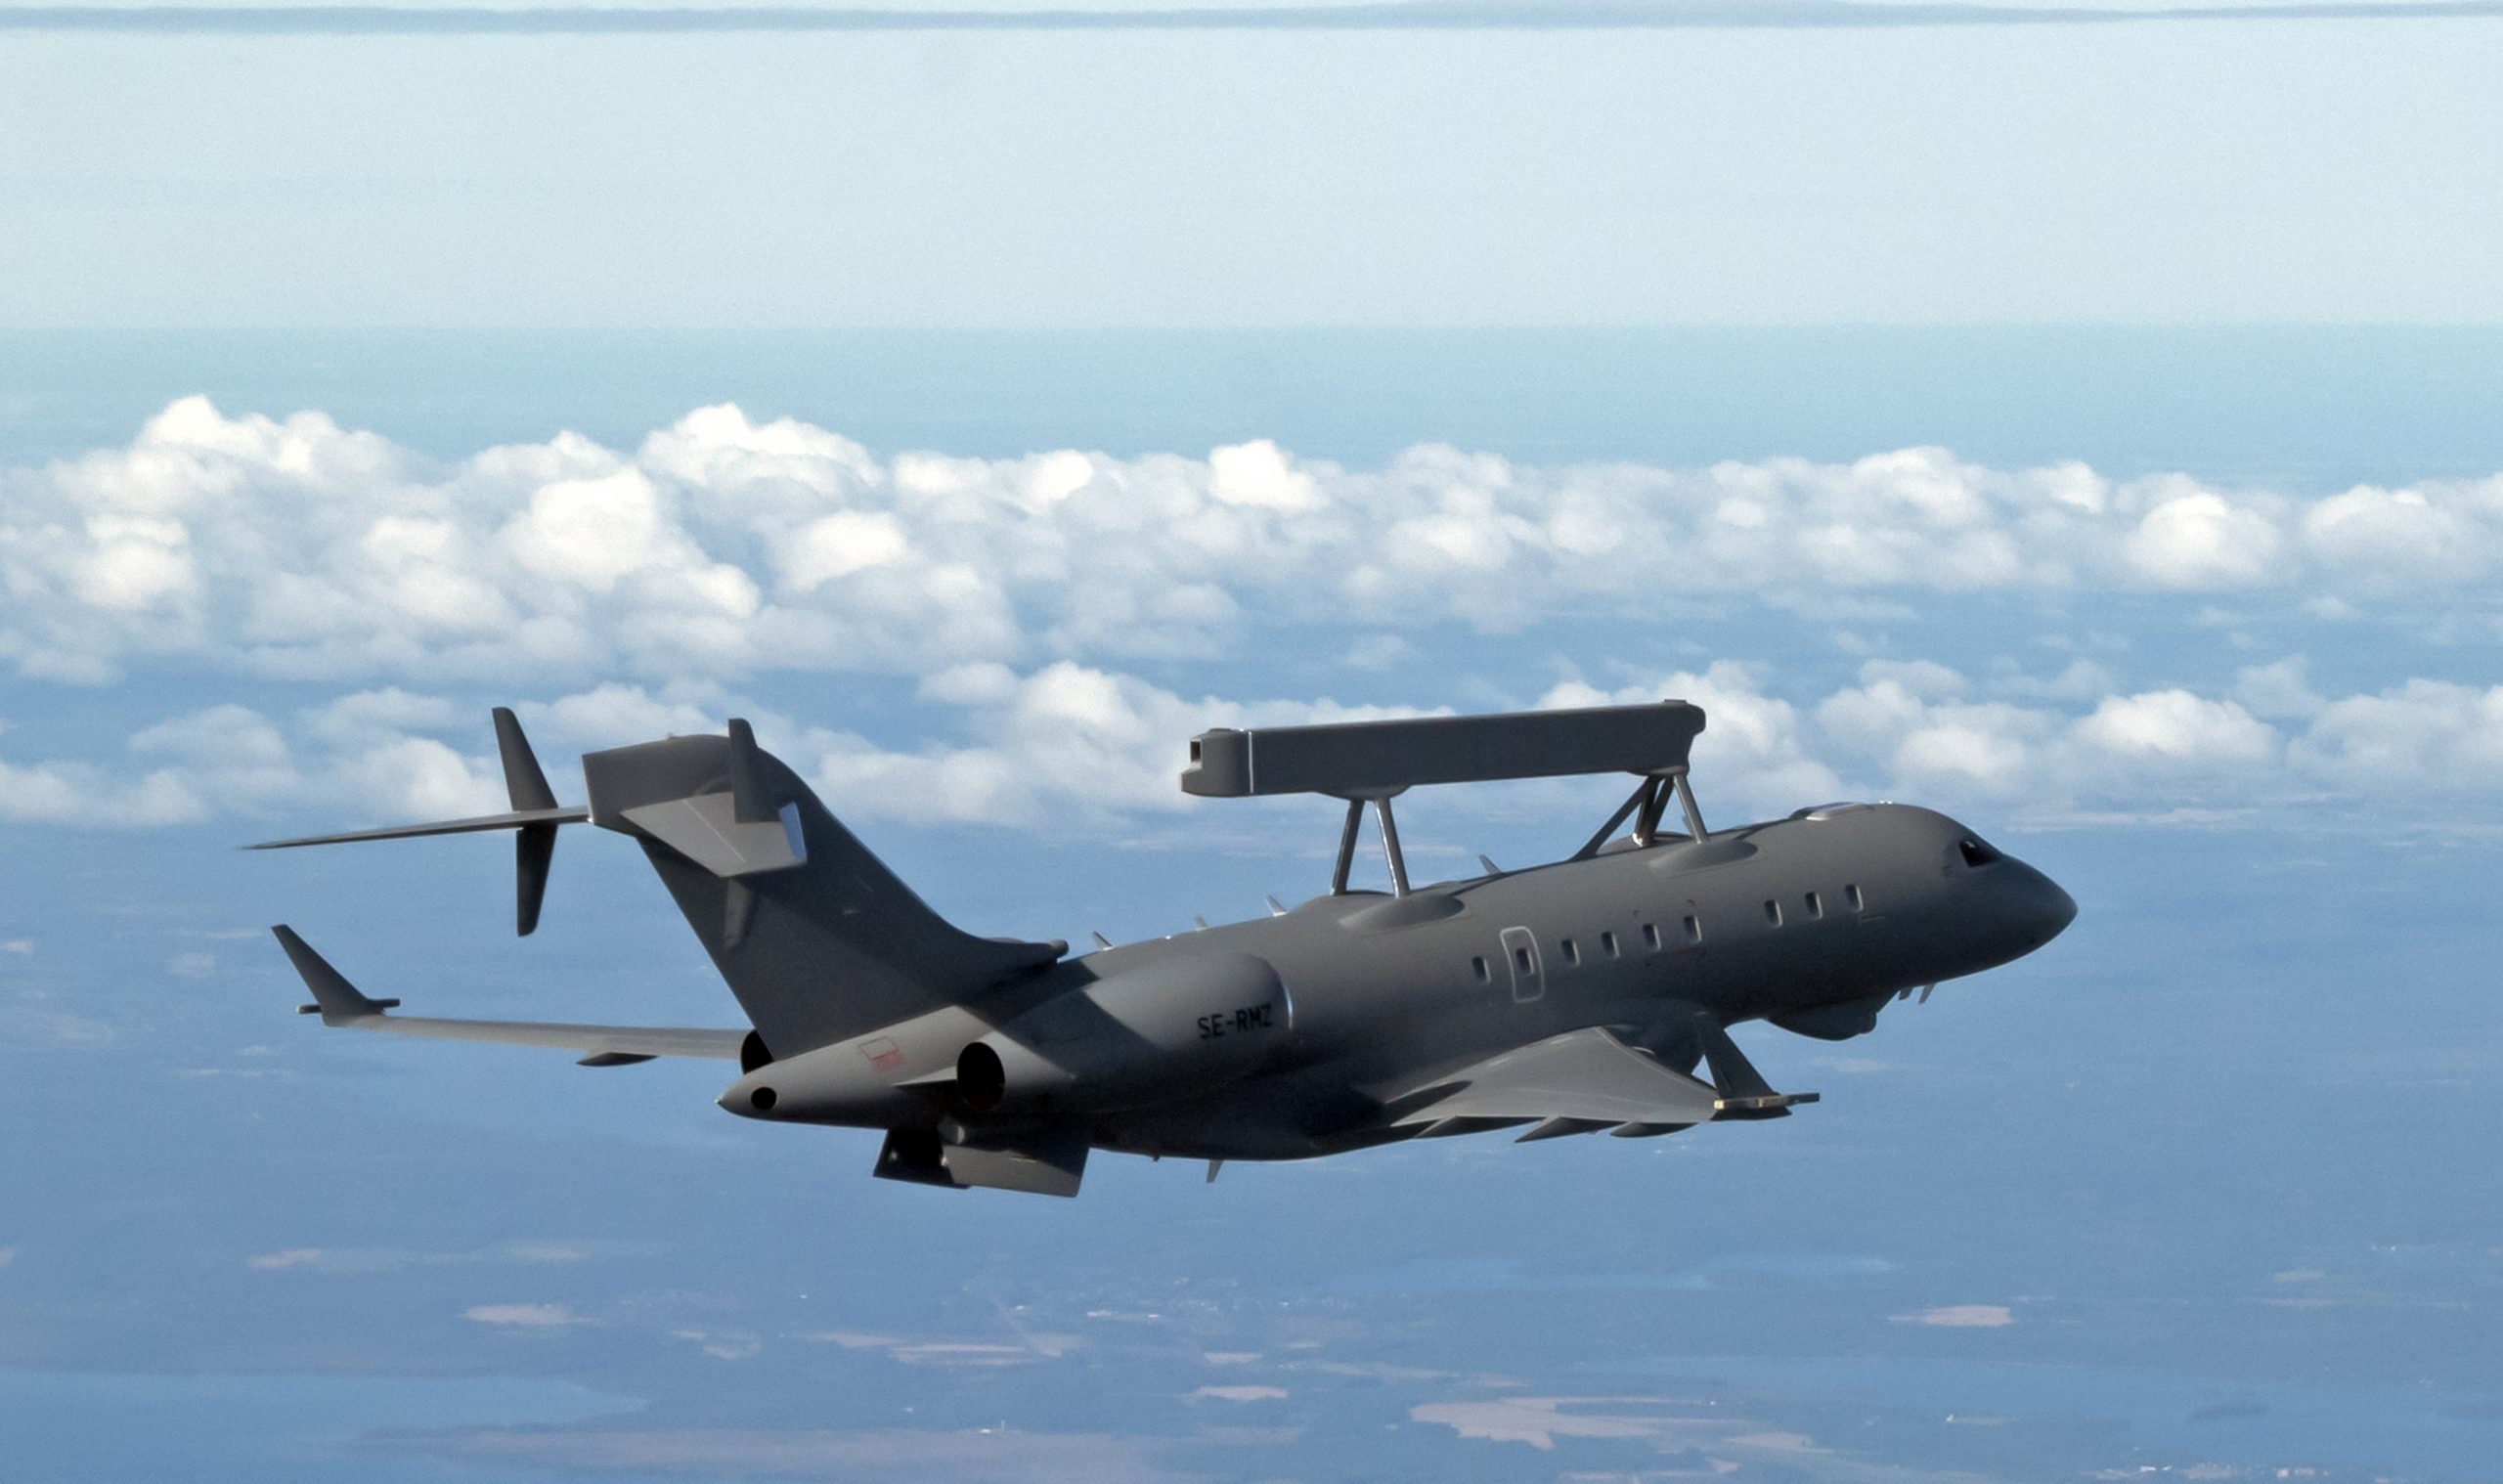 SAAB Delivered First GlobalEye Airborne Warning And Control System To UAE